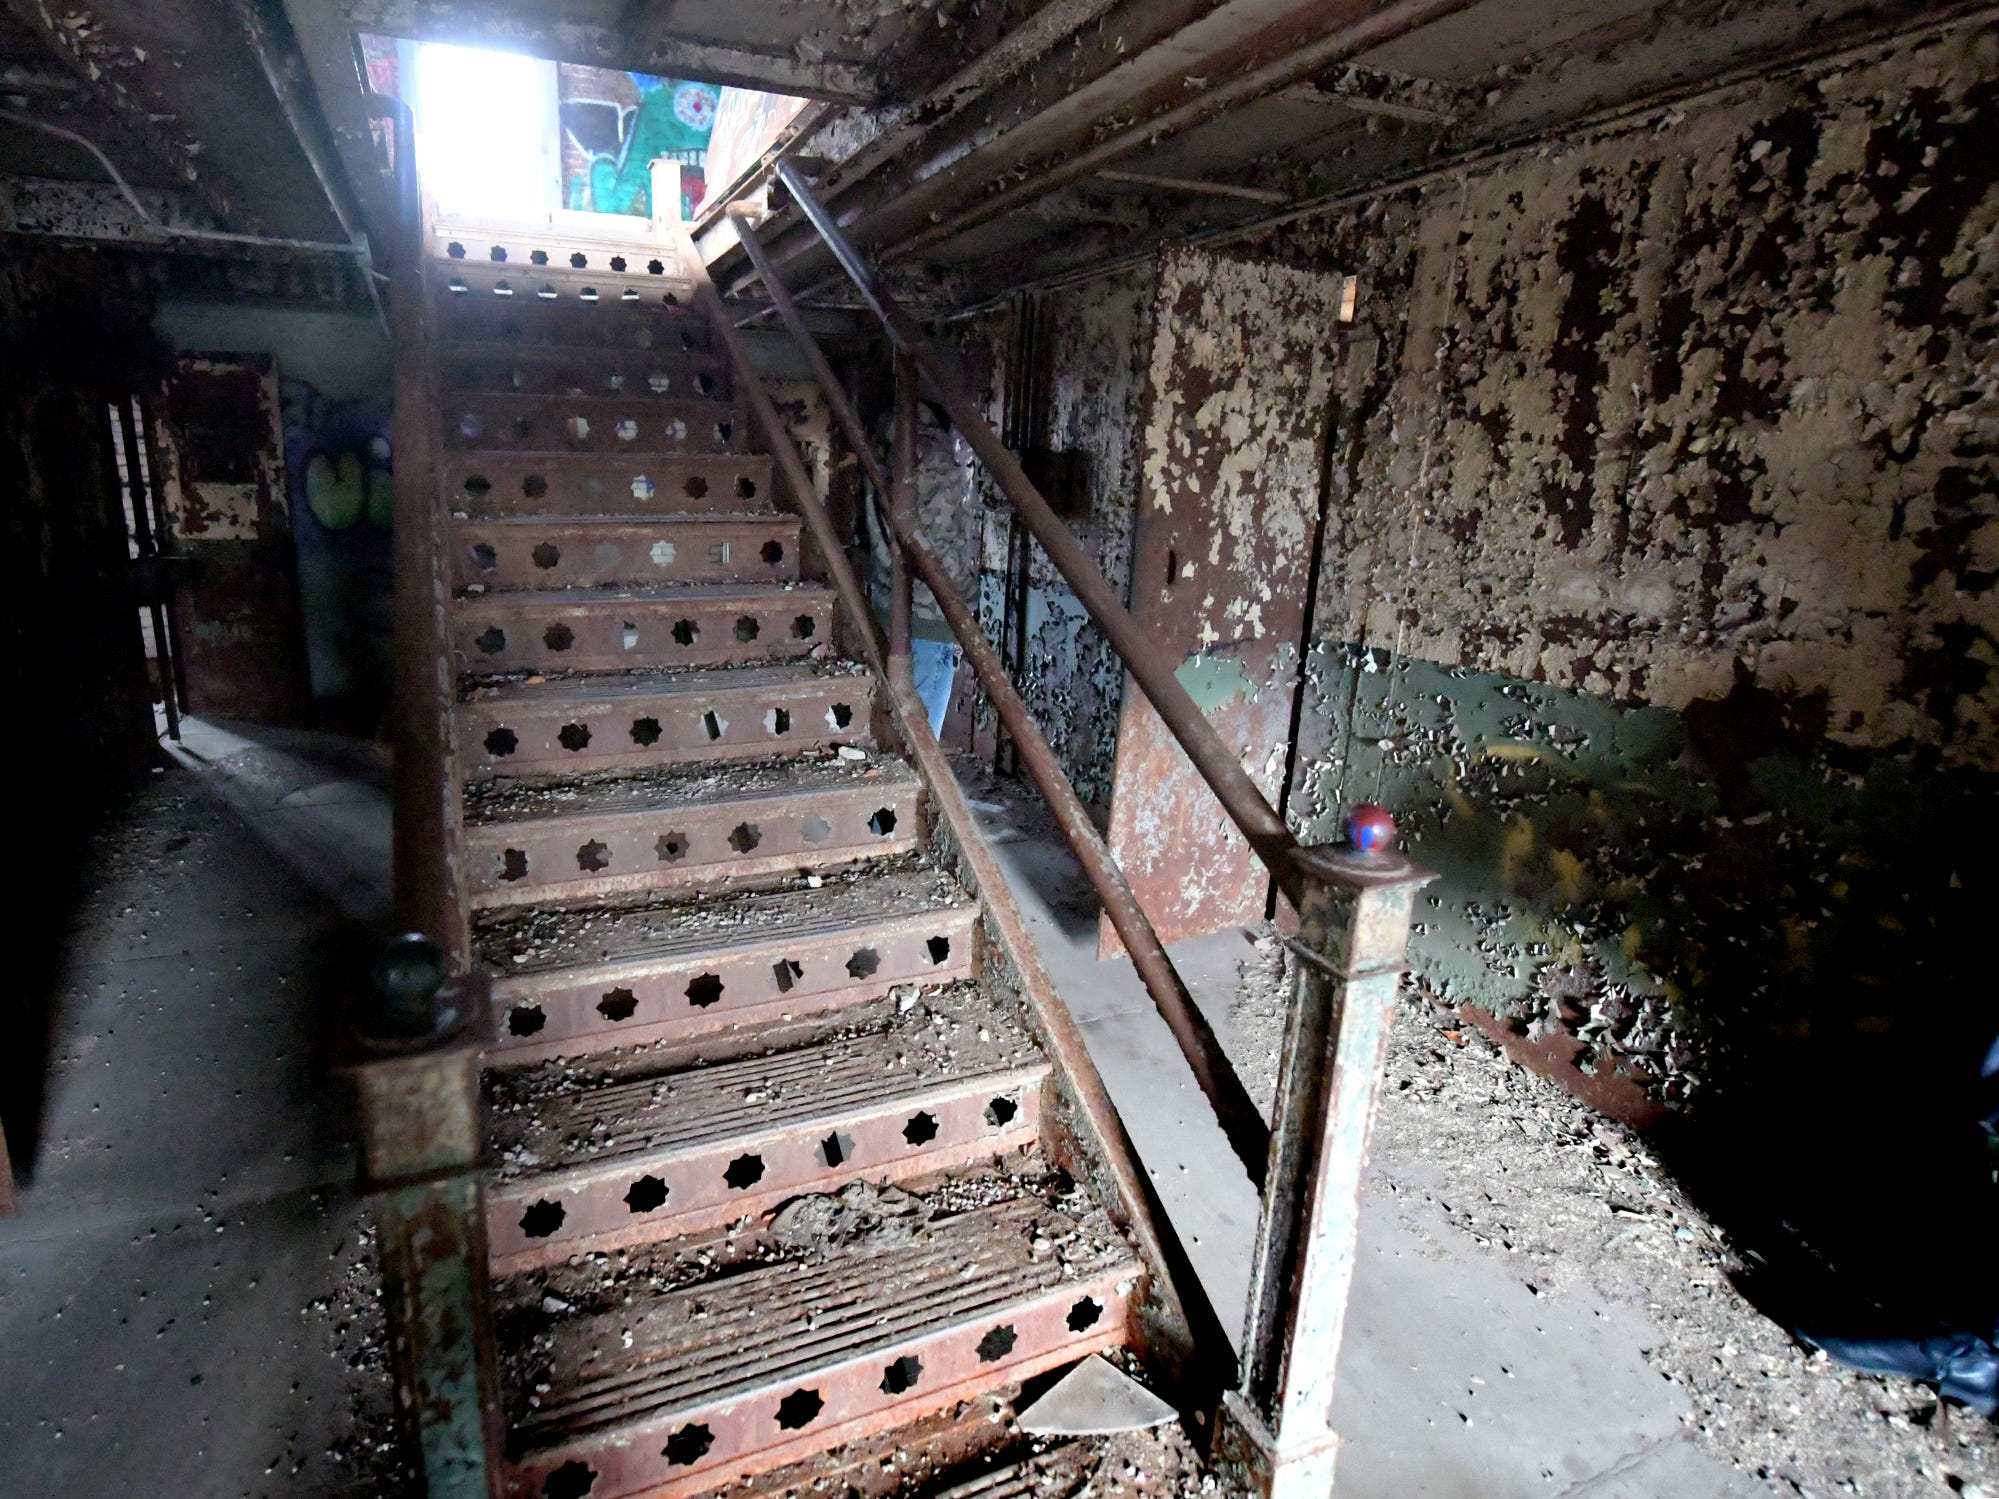 A stairway in the former York County Prison on Chestnut Street in York City Wednesday, Nov. 28, 2018. United Fiber and Data has purchased the building and plans to incorporate the structure into a data center to accompany a 400-mile fiber-optic network it's building between New York and Virginia. Bill Kalina photo